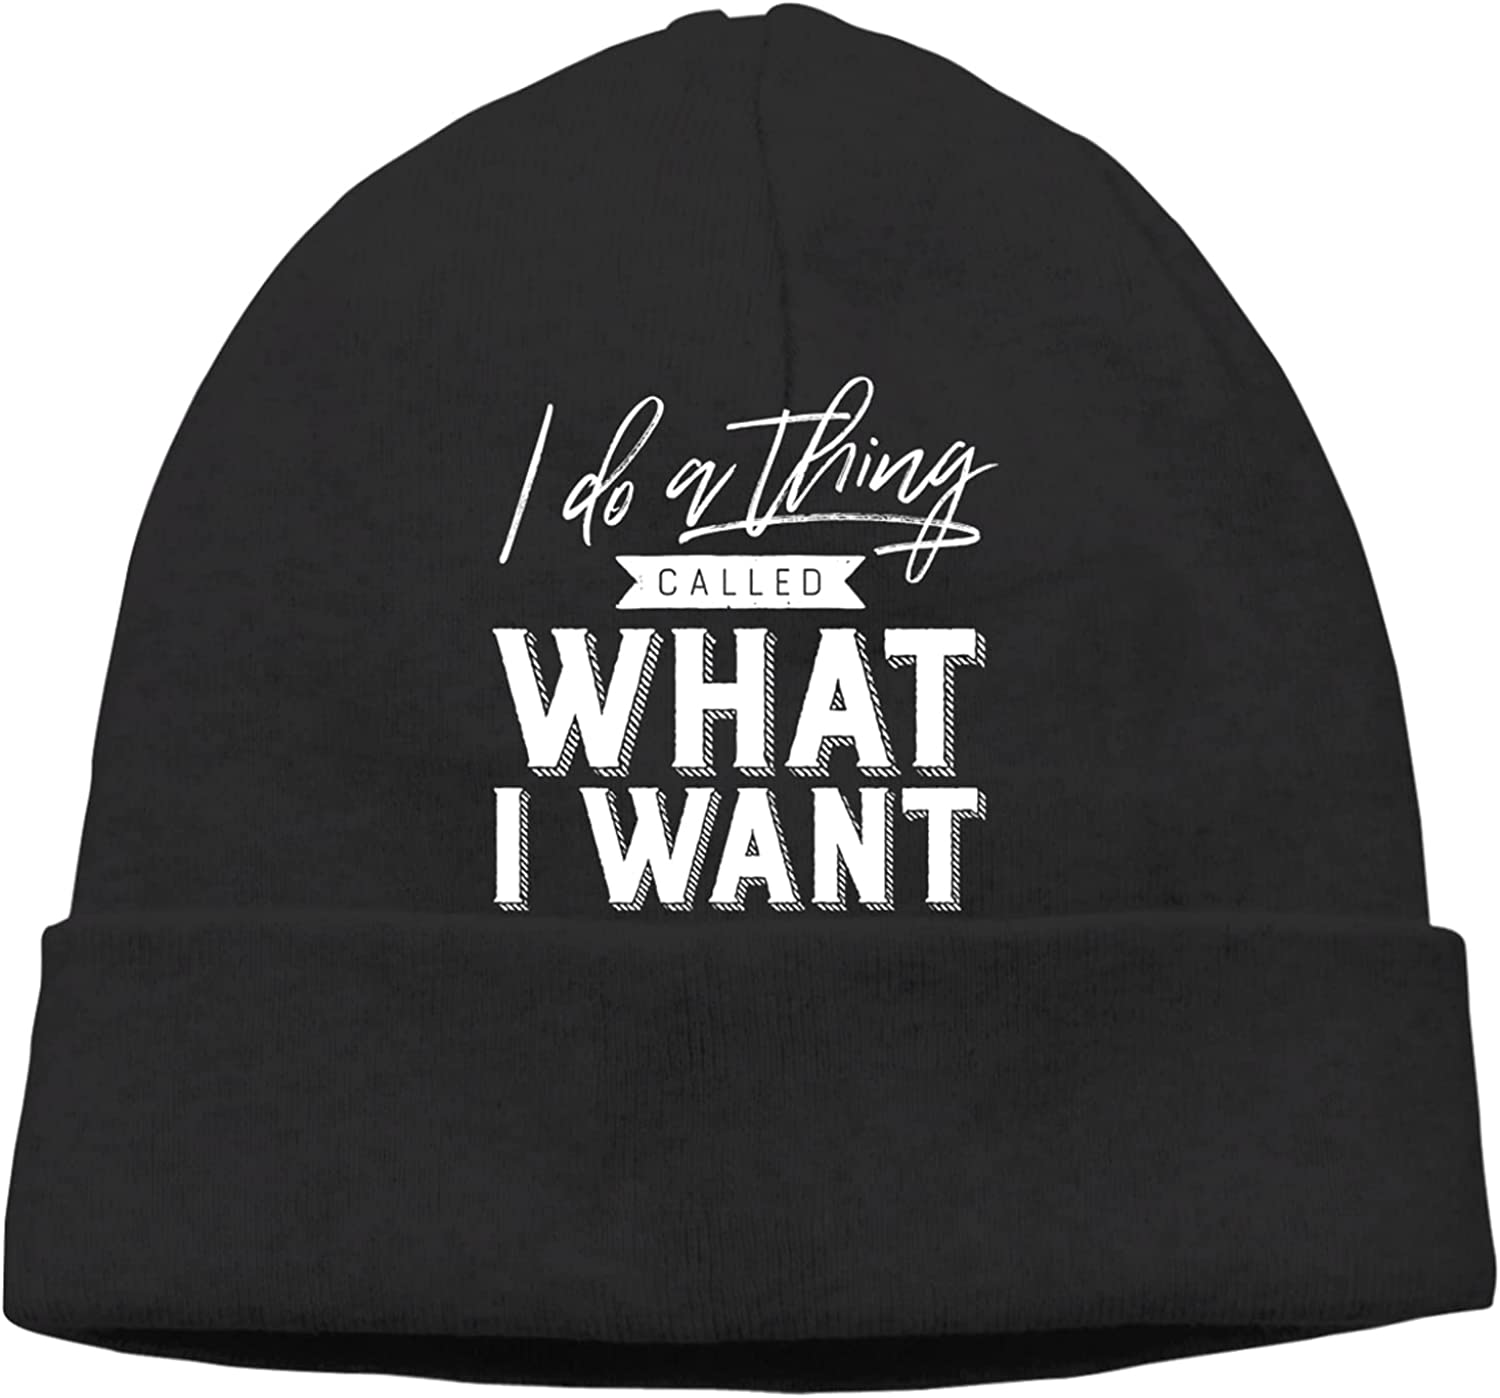 I Do A Thing Called What Want2 Unisex Beanie H Milwaukee Mall Slogan Cap Warm Max 61% OFF